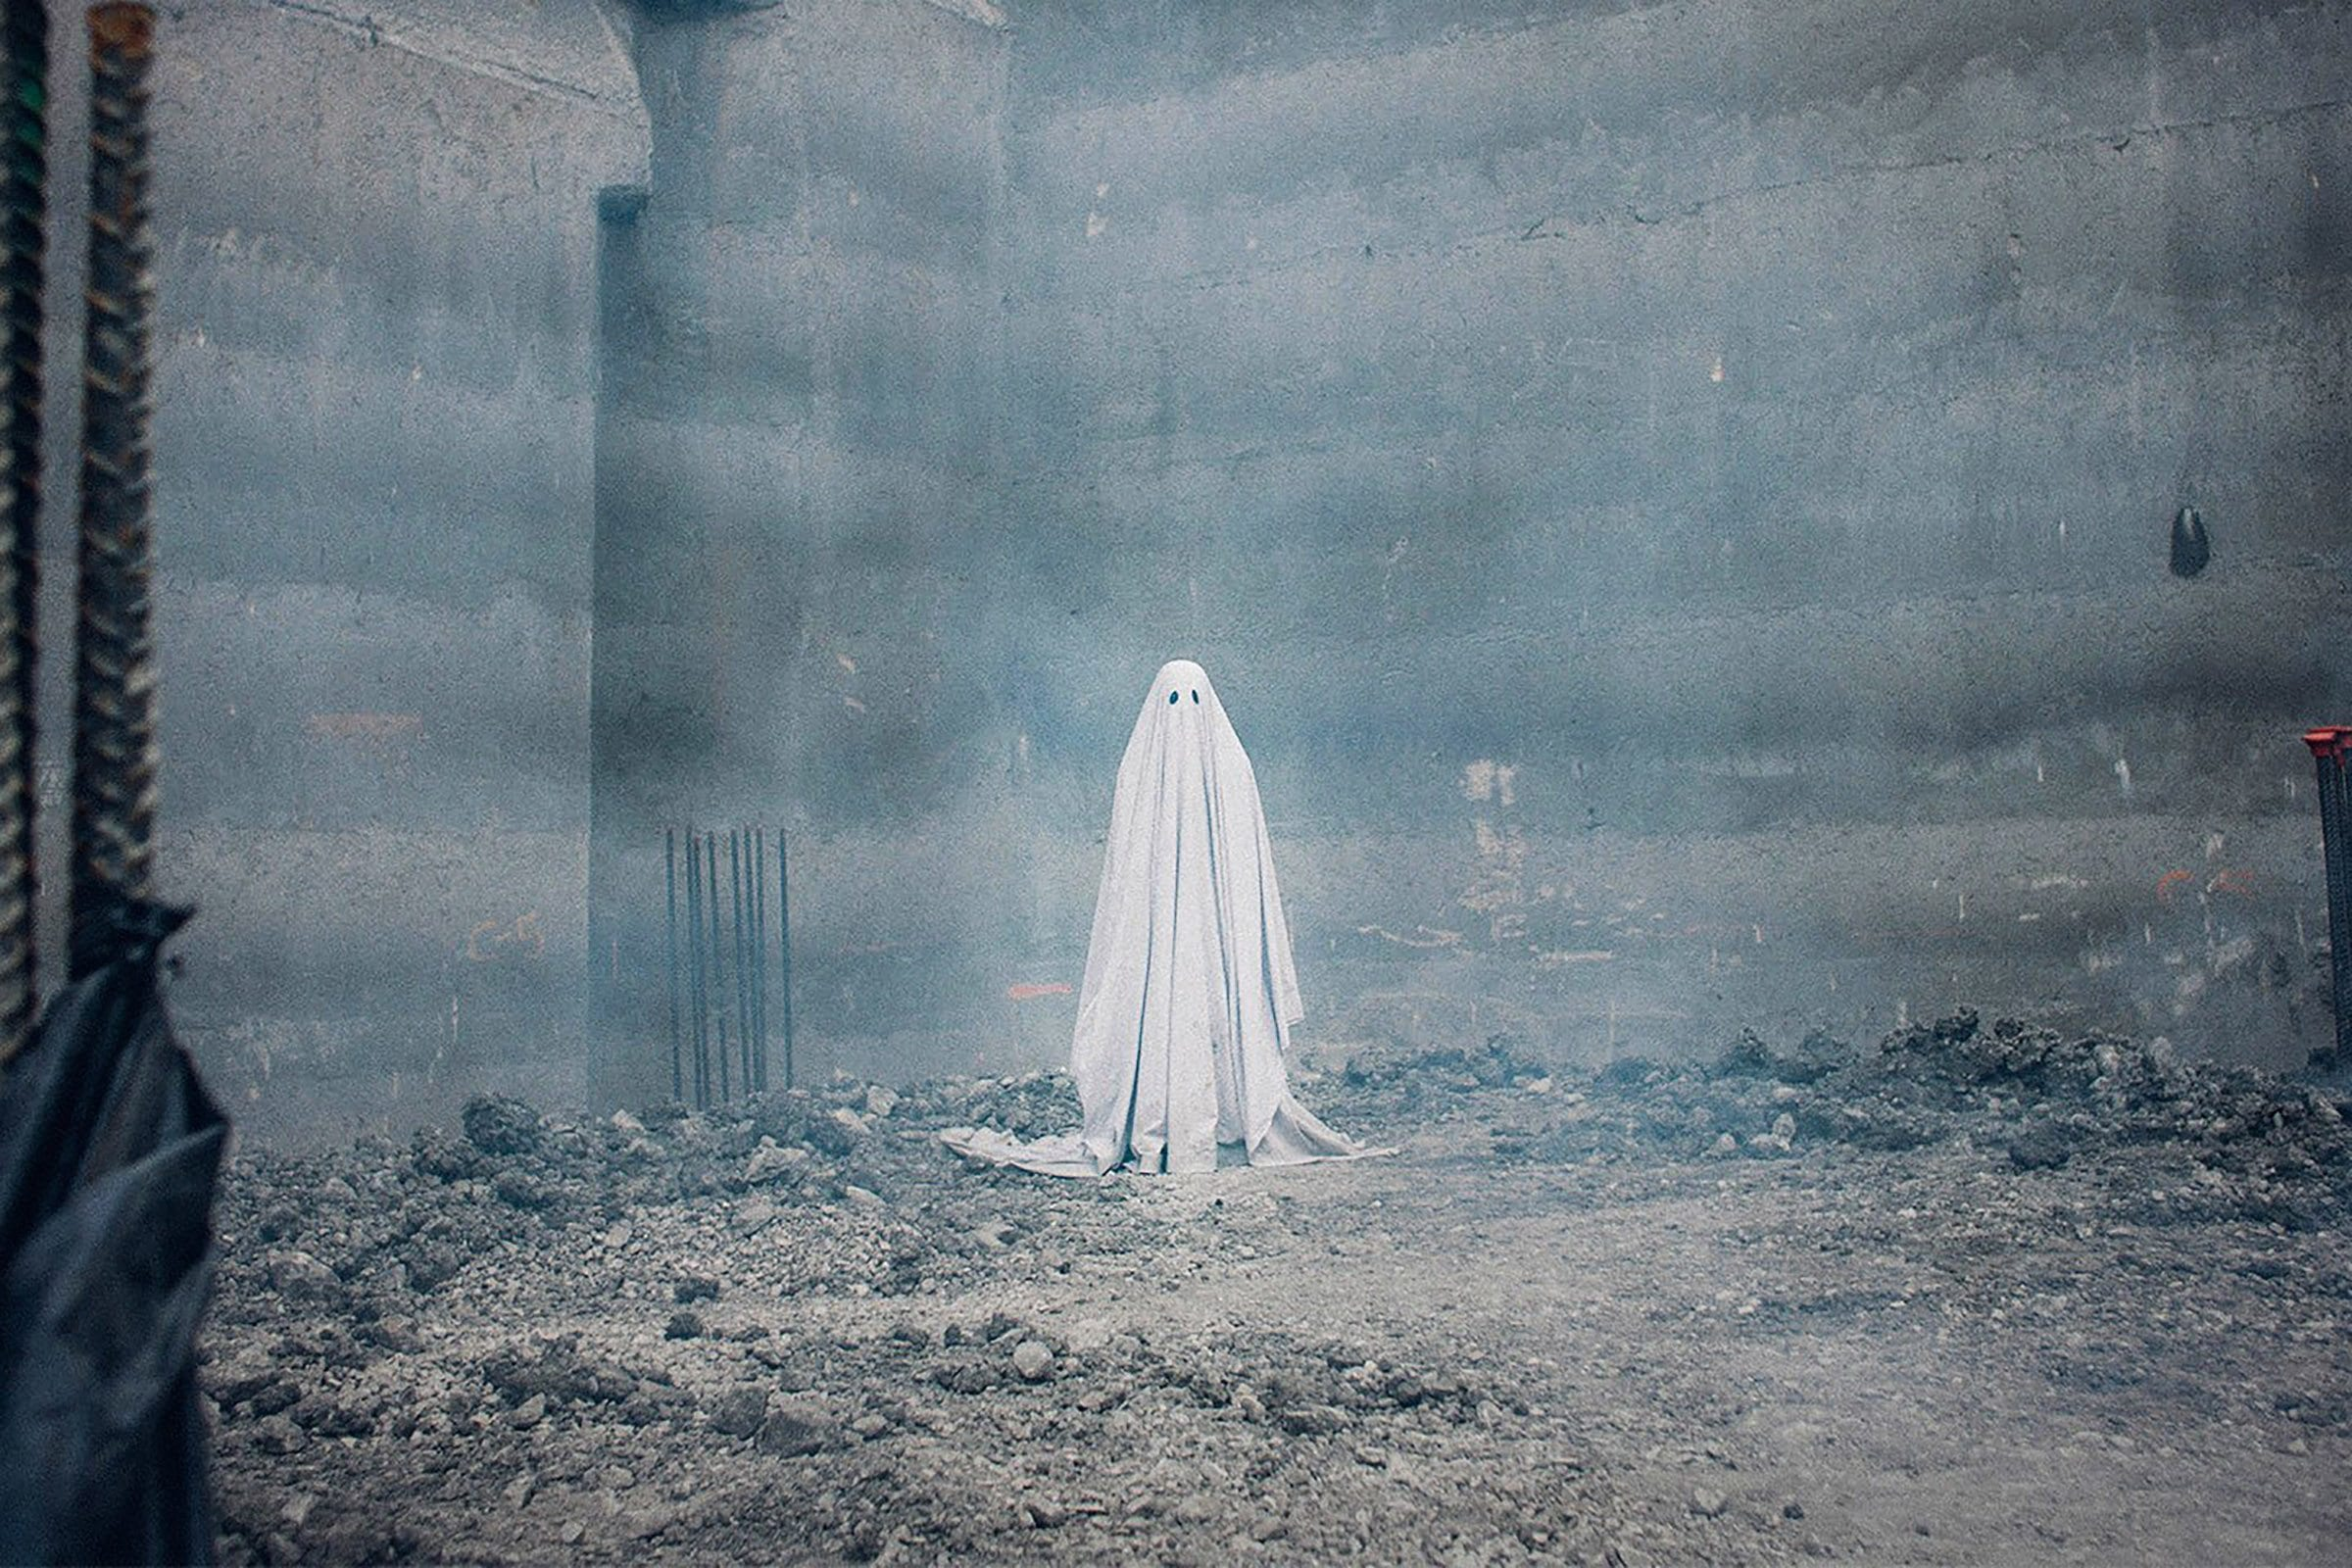 """'A Ghost Story', directed by David Lowery, is pegged as a """"singular exploration of legacy, loss, and the essential human longing for meaning""""."""